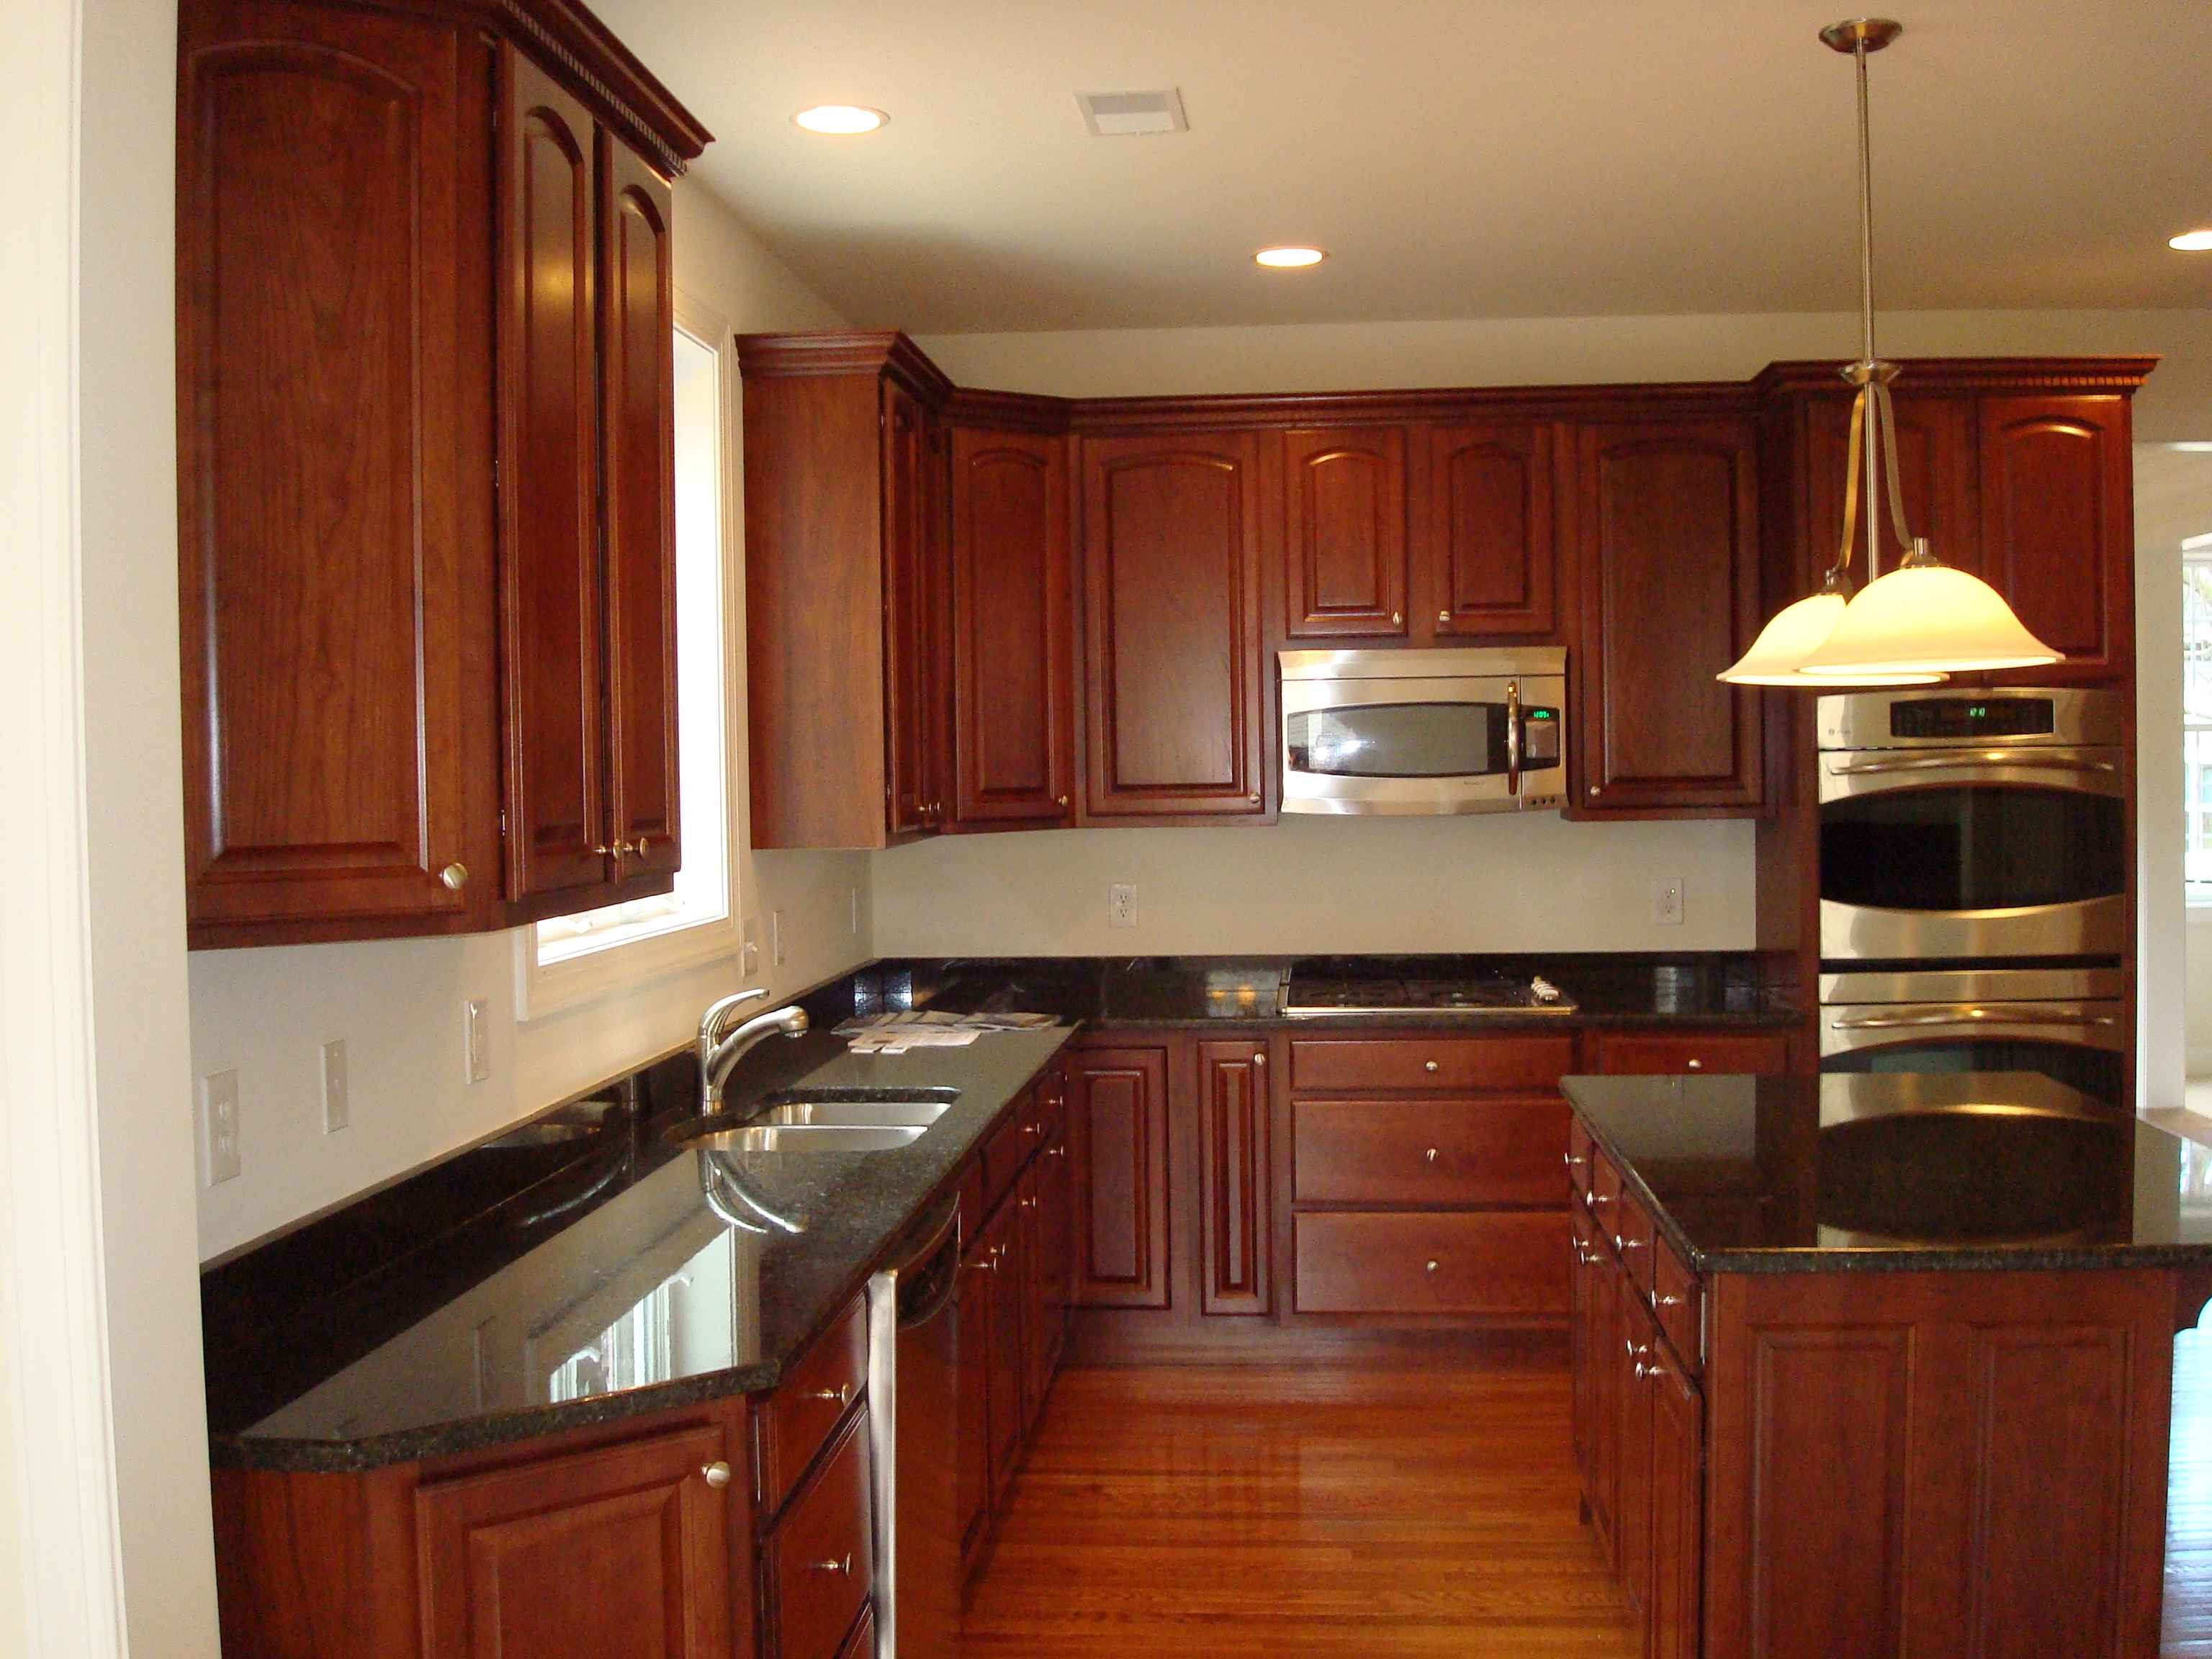 kitchens and bathrooms renovation kitchen remodeling